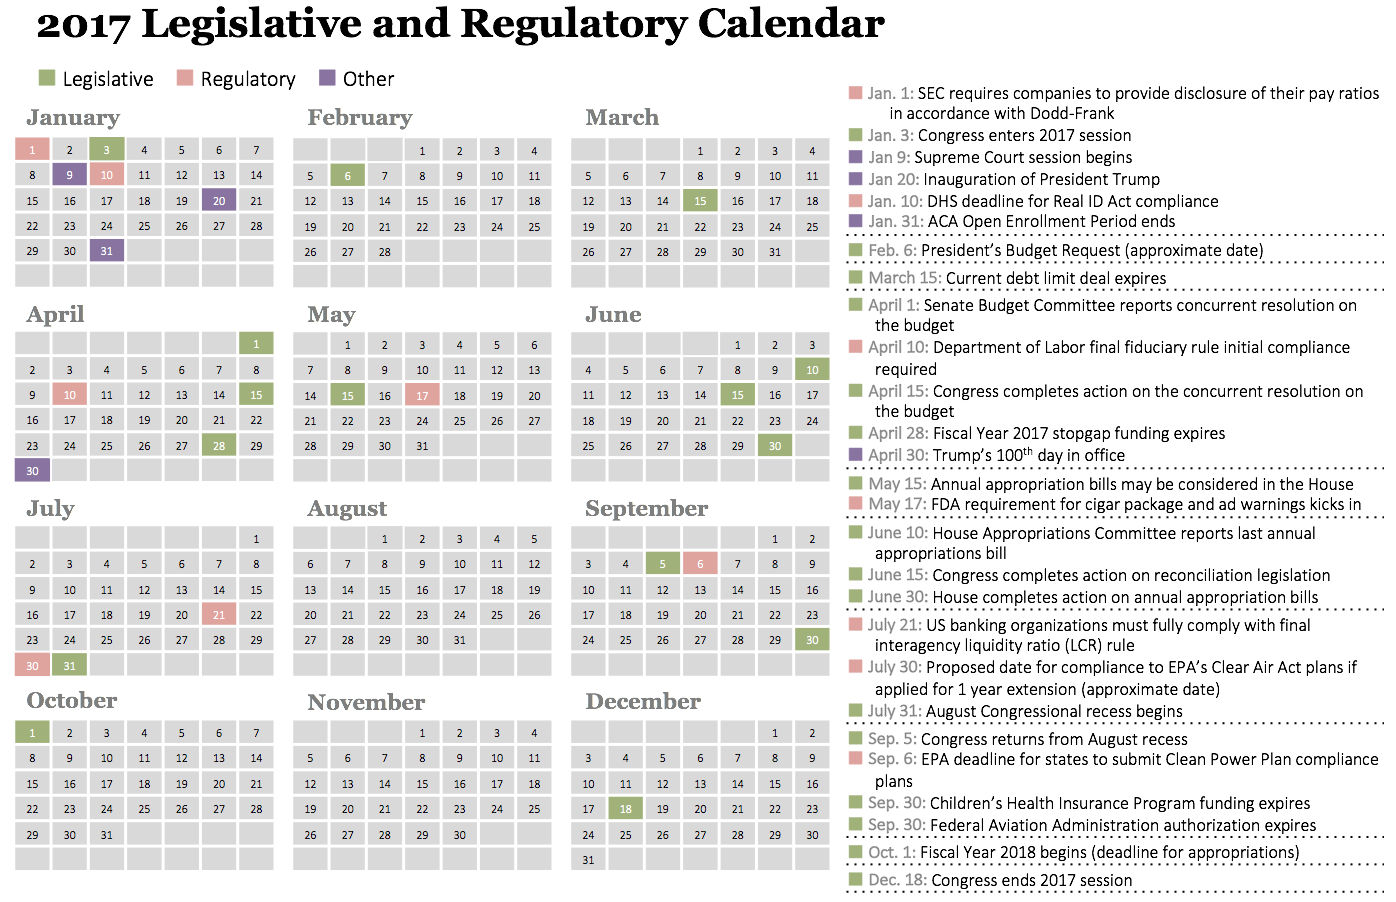 2017 Legislative and Regulatory Calendar